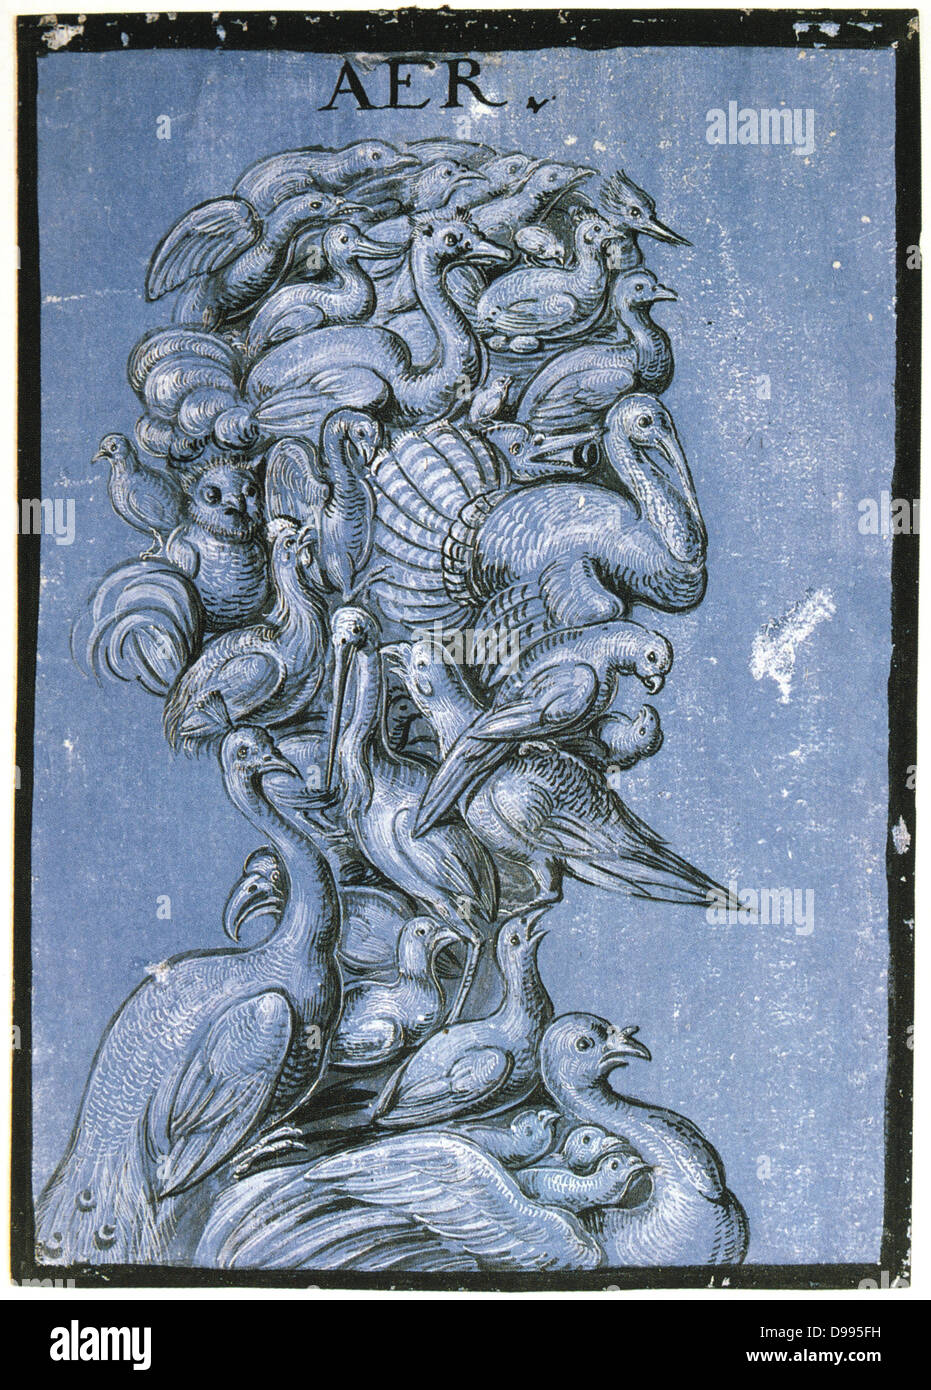 Air', c1600. Tempera on blue paper. Anonymous. Grotesque head and shoulders composed of various birds. - Stock Image